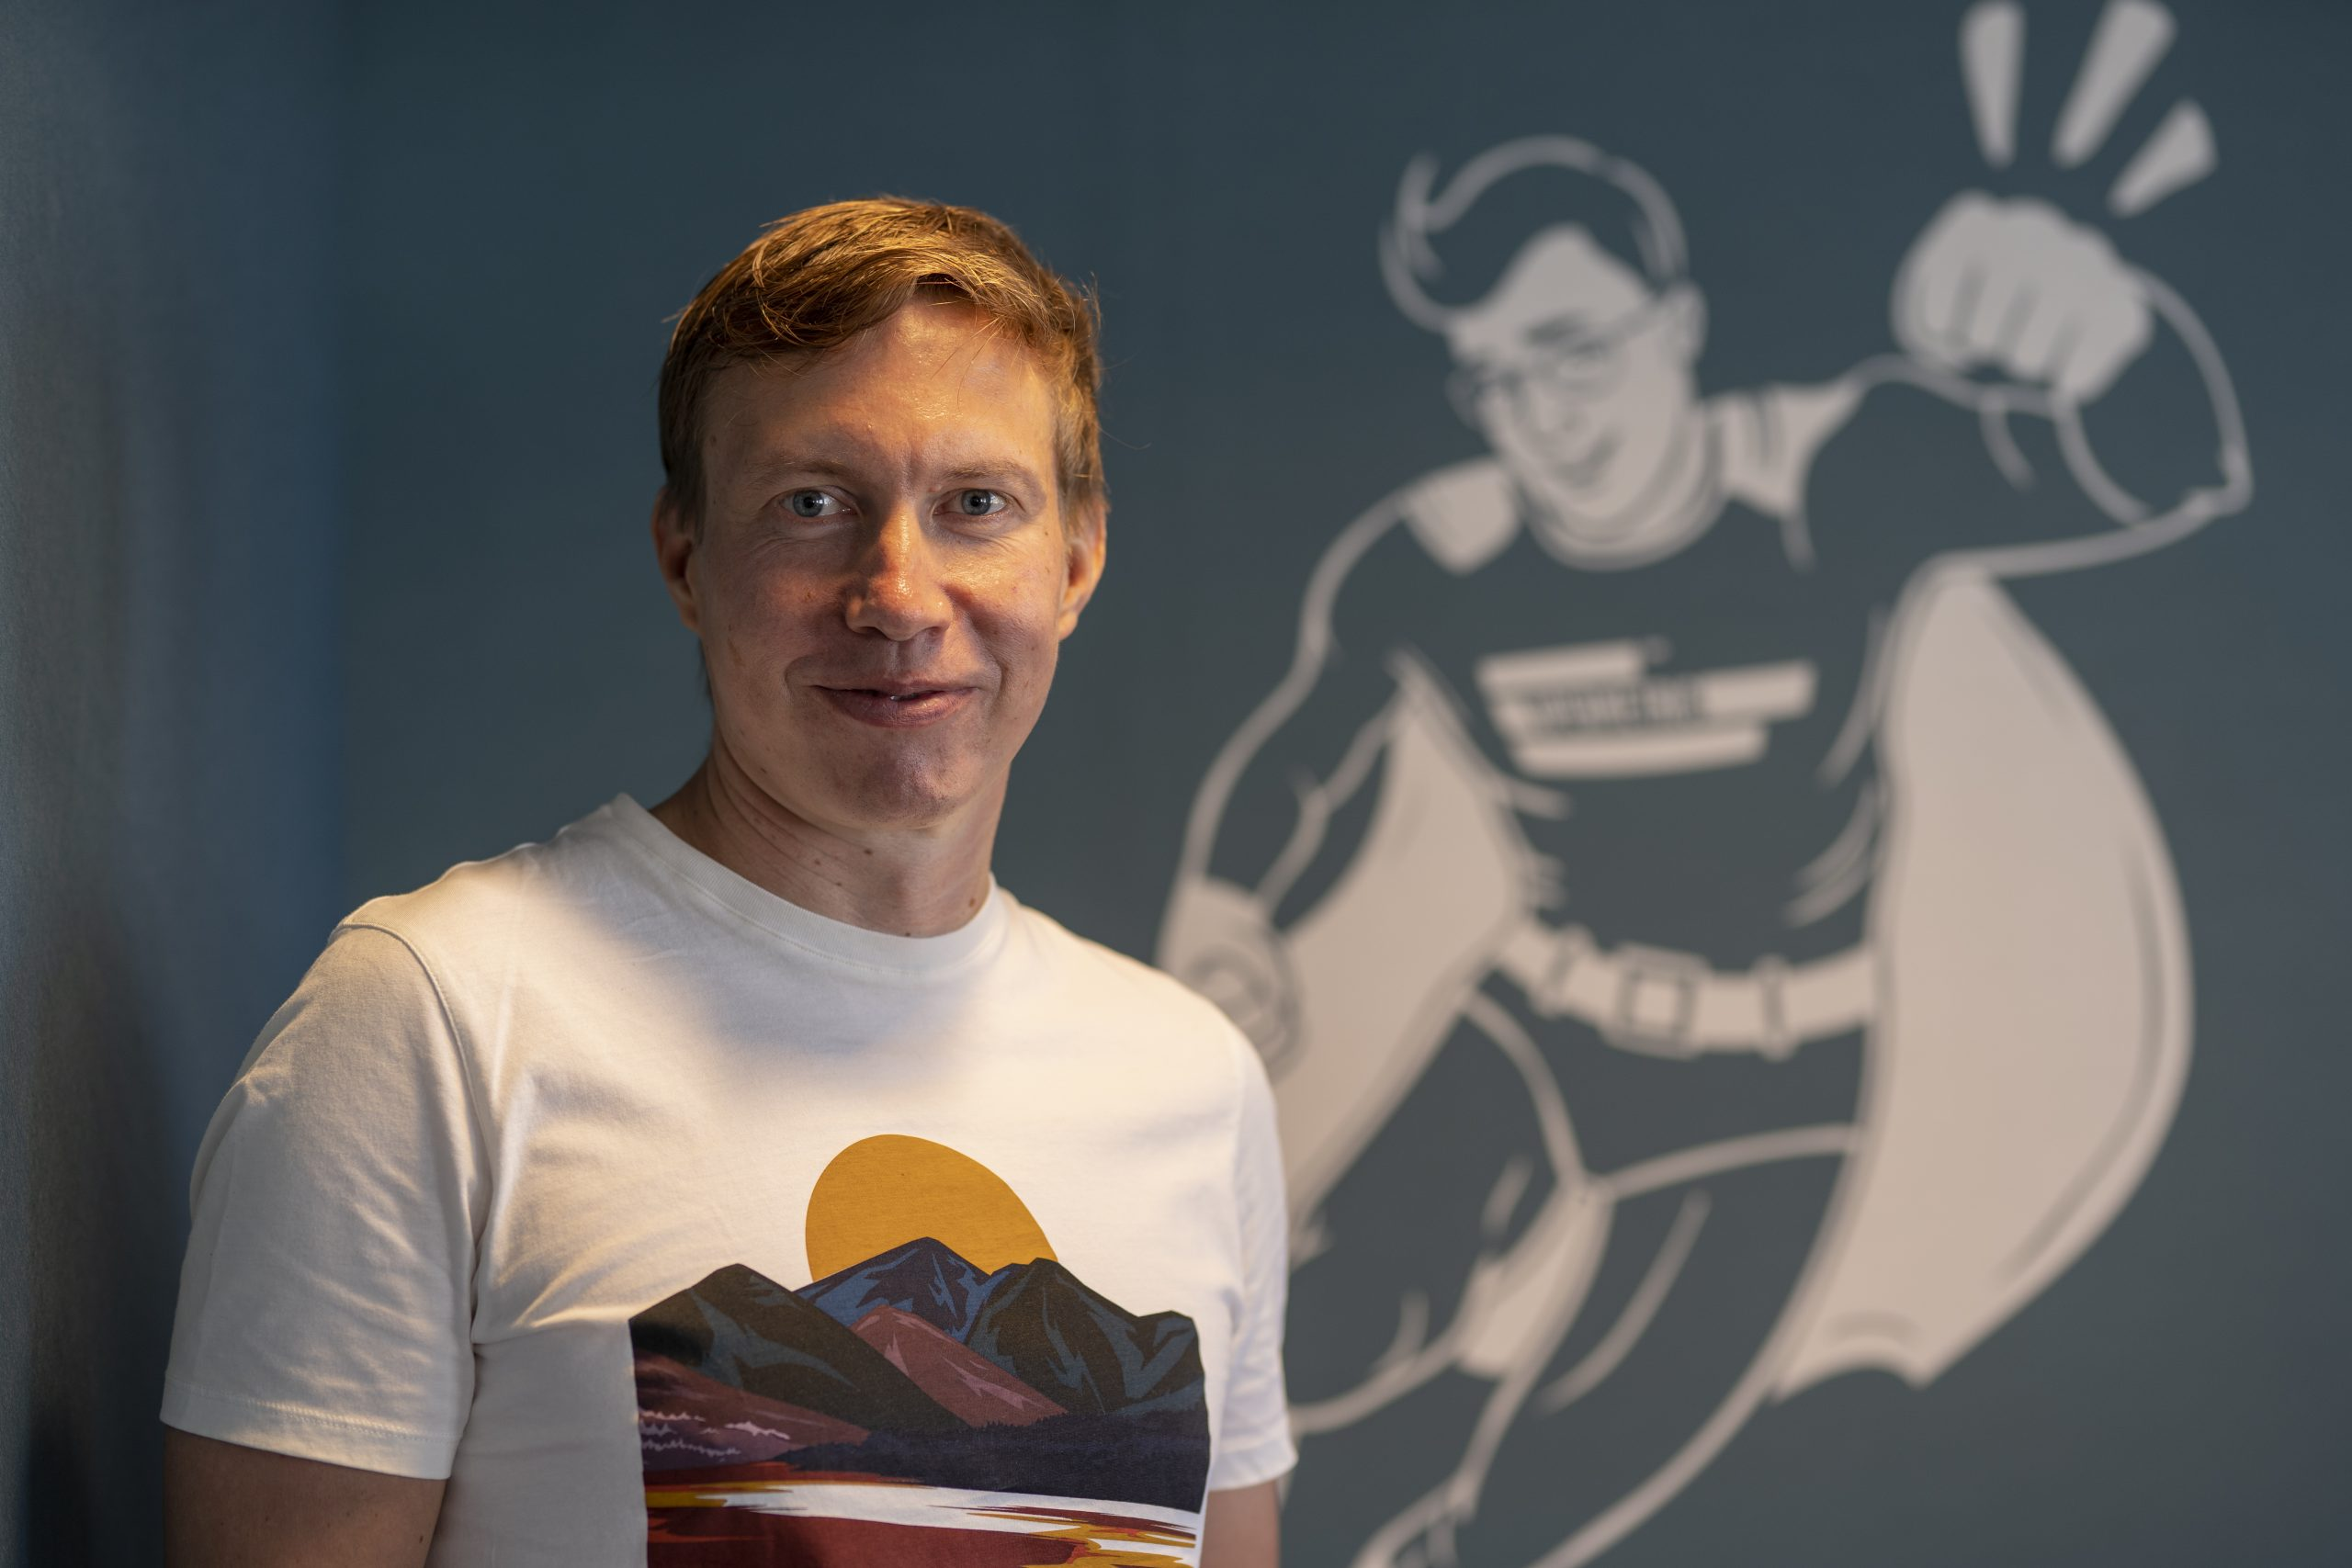 Supermetrics CEO Mikael Thuneberg